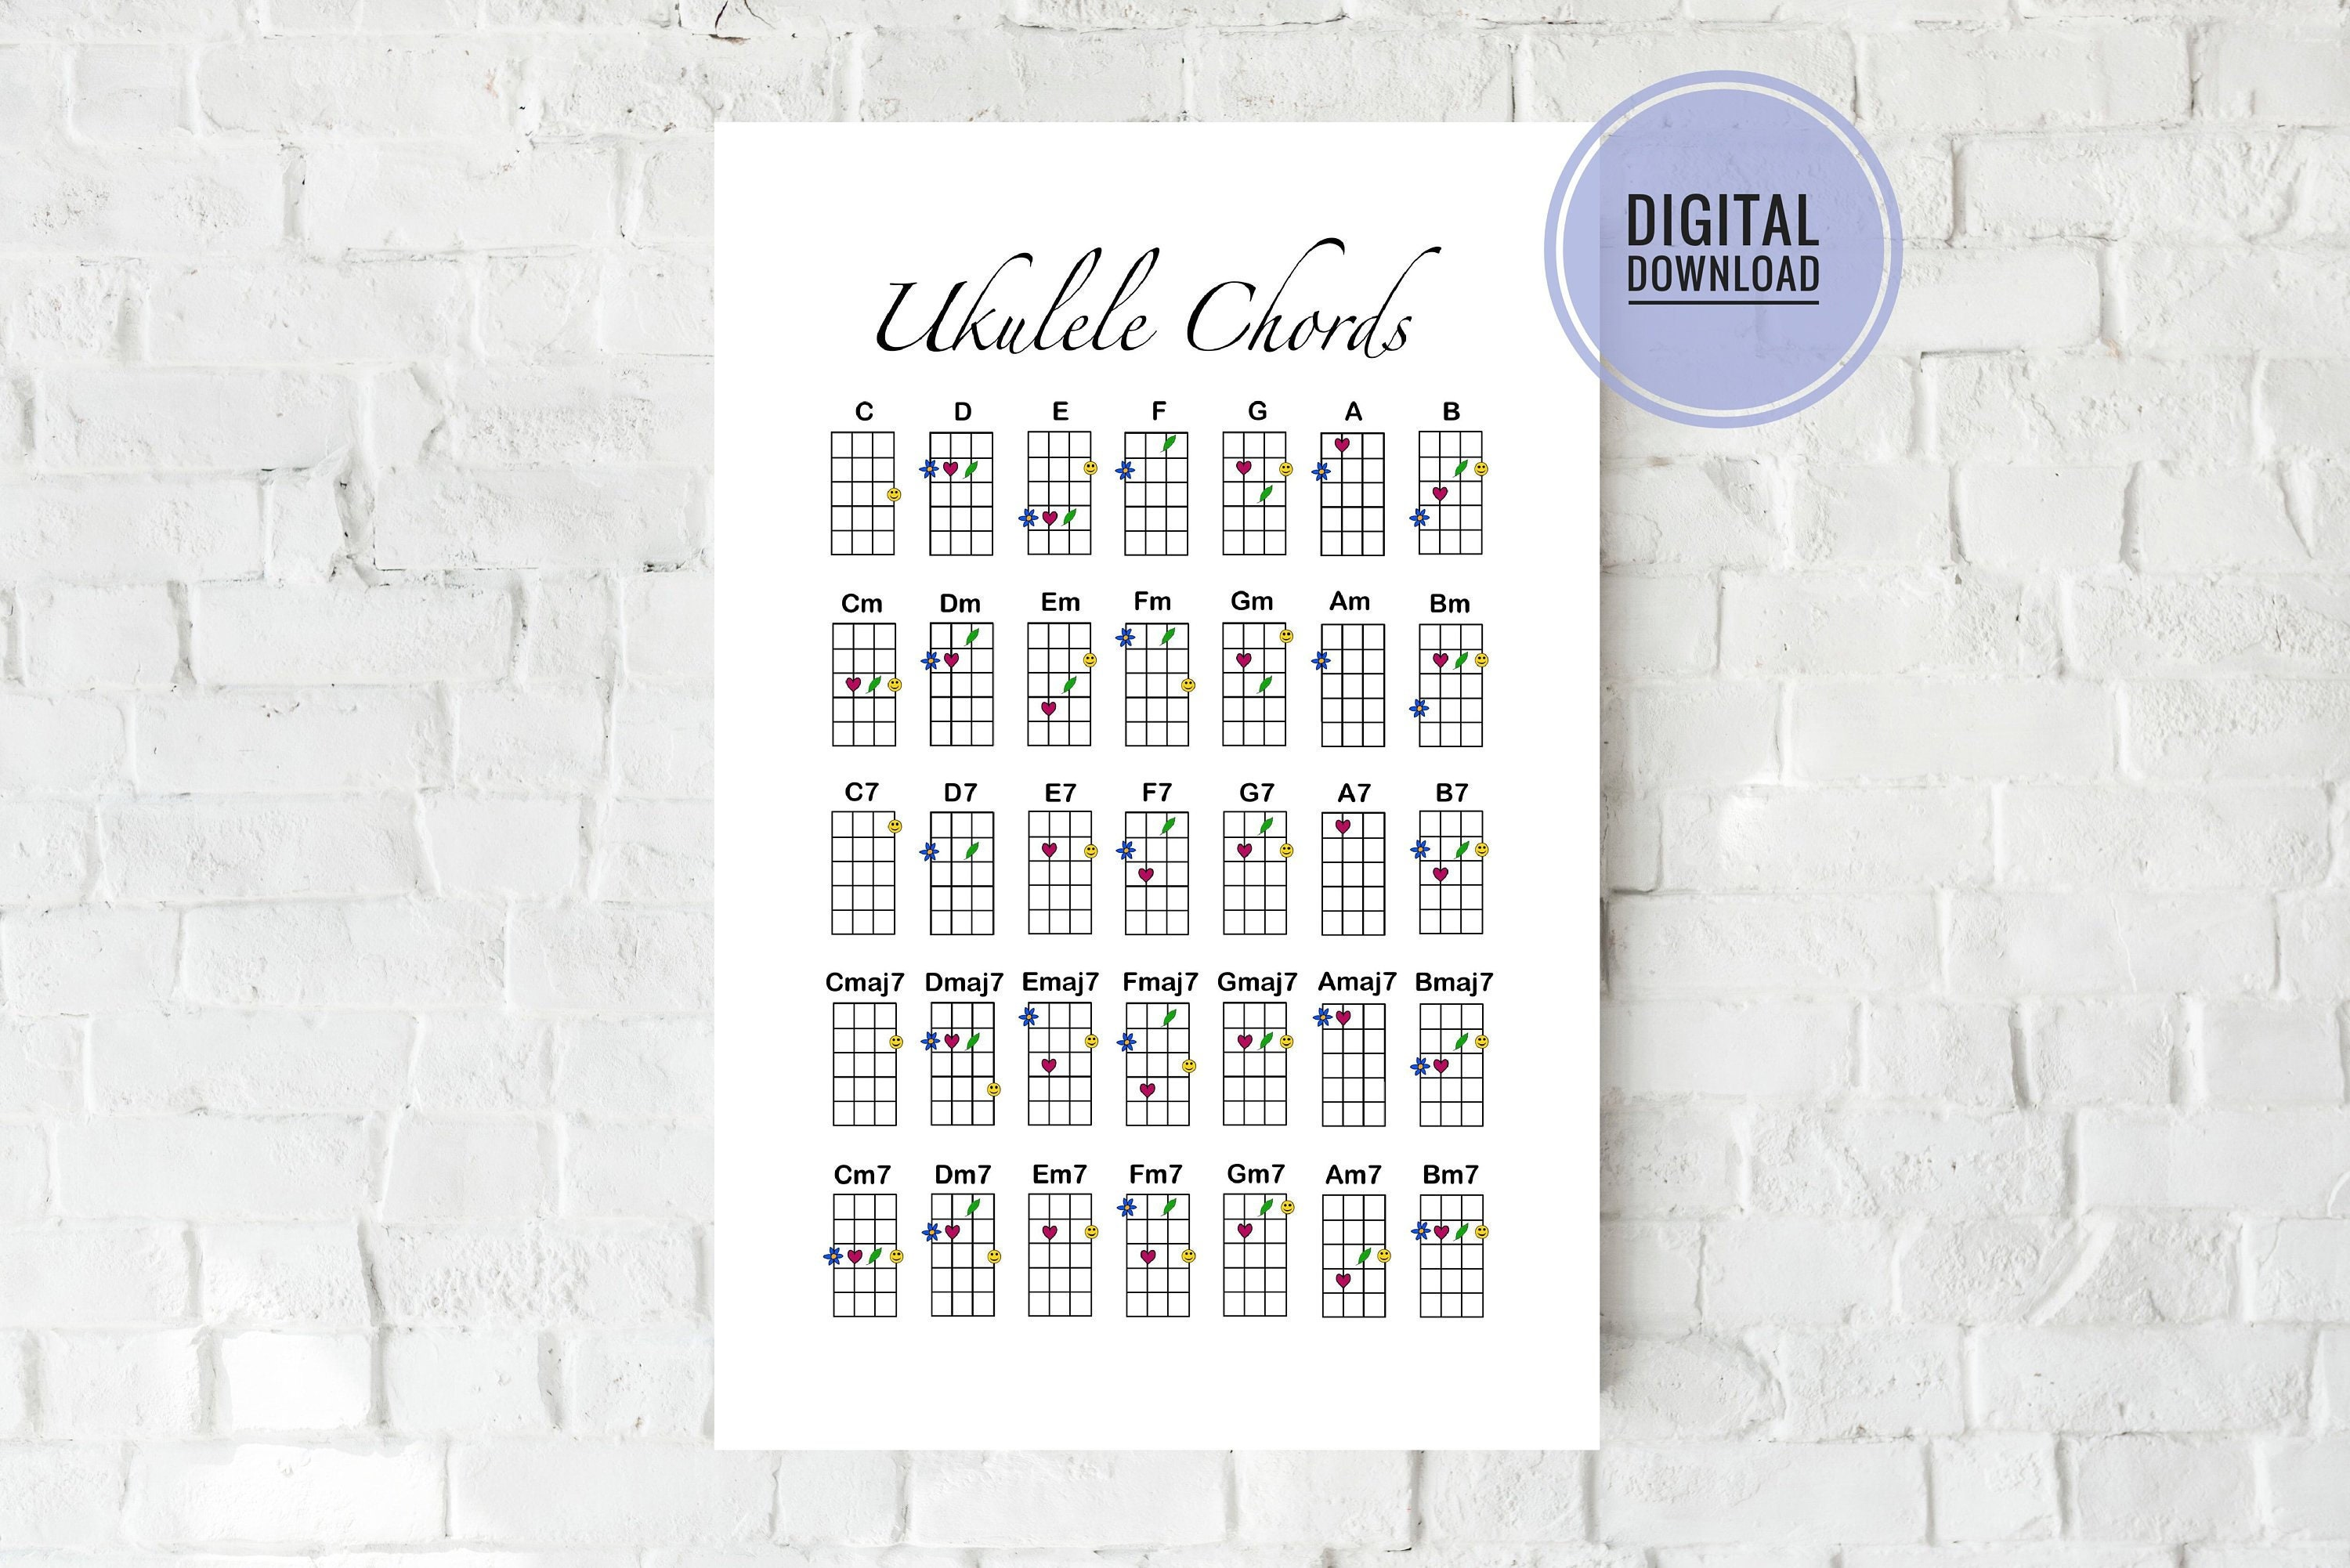 Ukulele Chord Chart - Digital Download Artwork - Stylized Ukulele Chords -  Wall Art - Room Decor - Reference Sheet - By Grace and Gloria Co